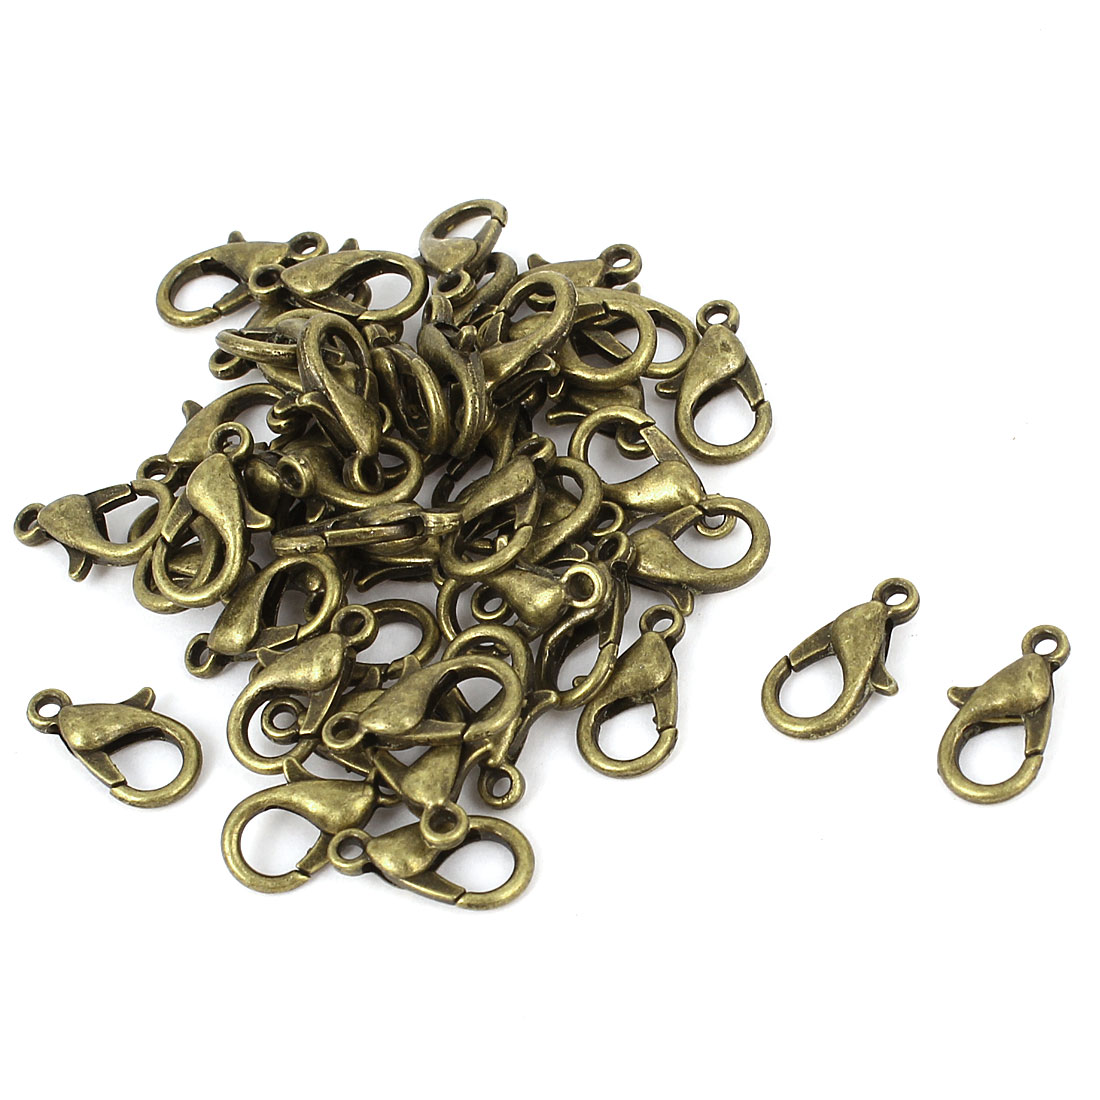 50 Pcs 12x6mm Bronze Tone Lobster Trigger Claw Clasps Jewelry Connector Kits